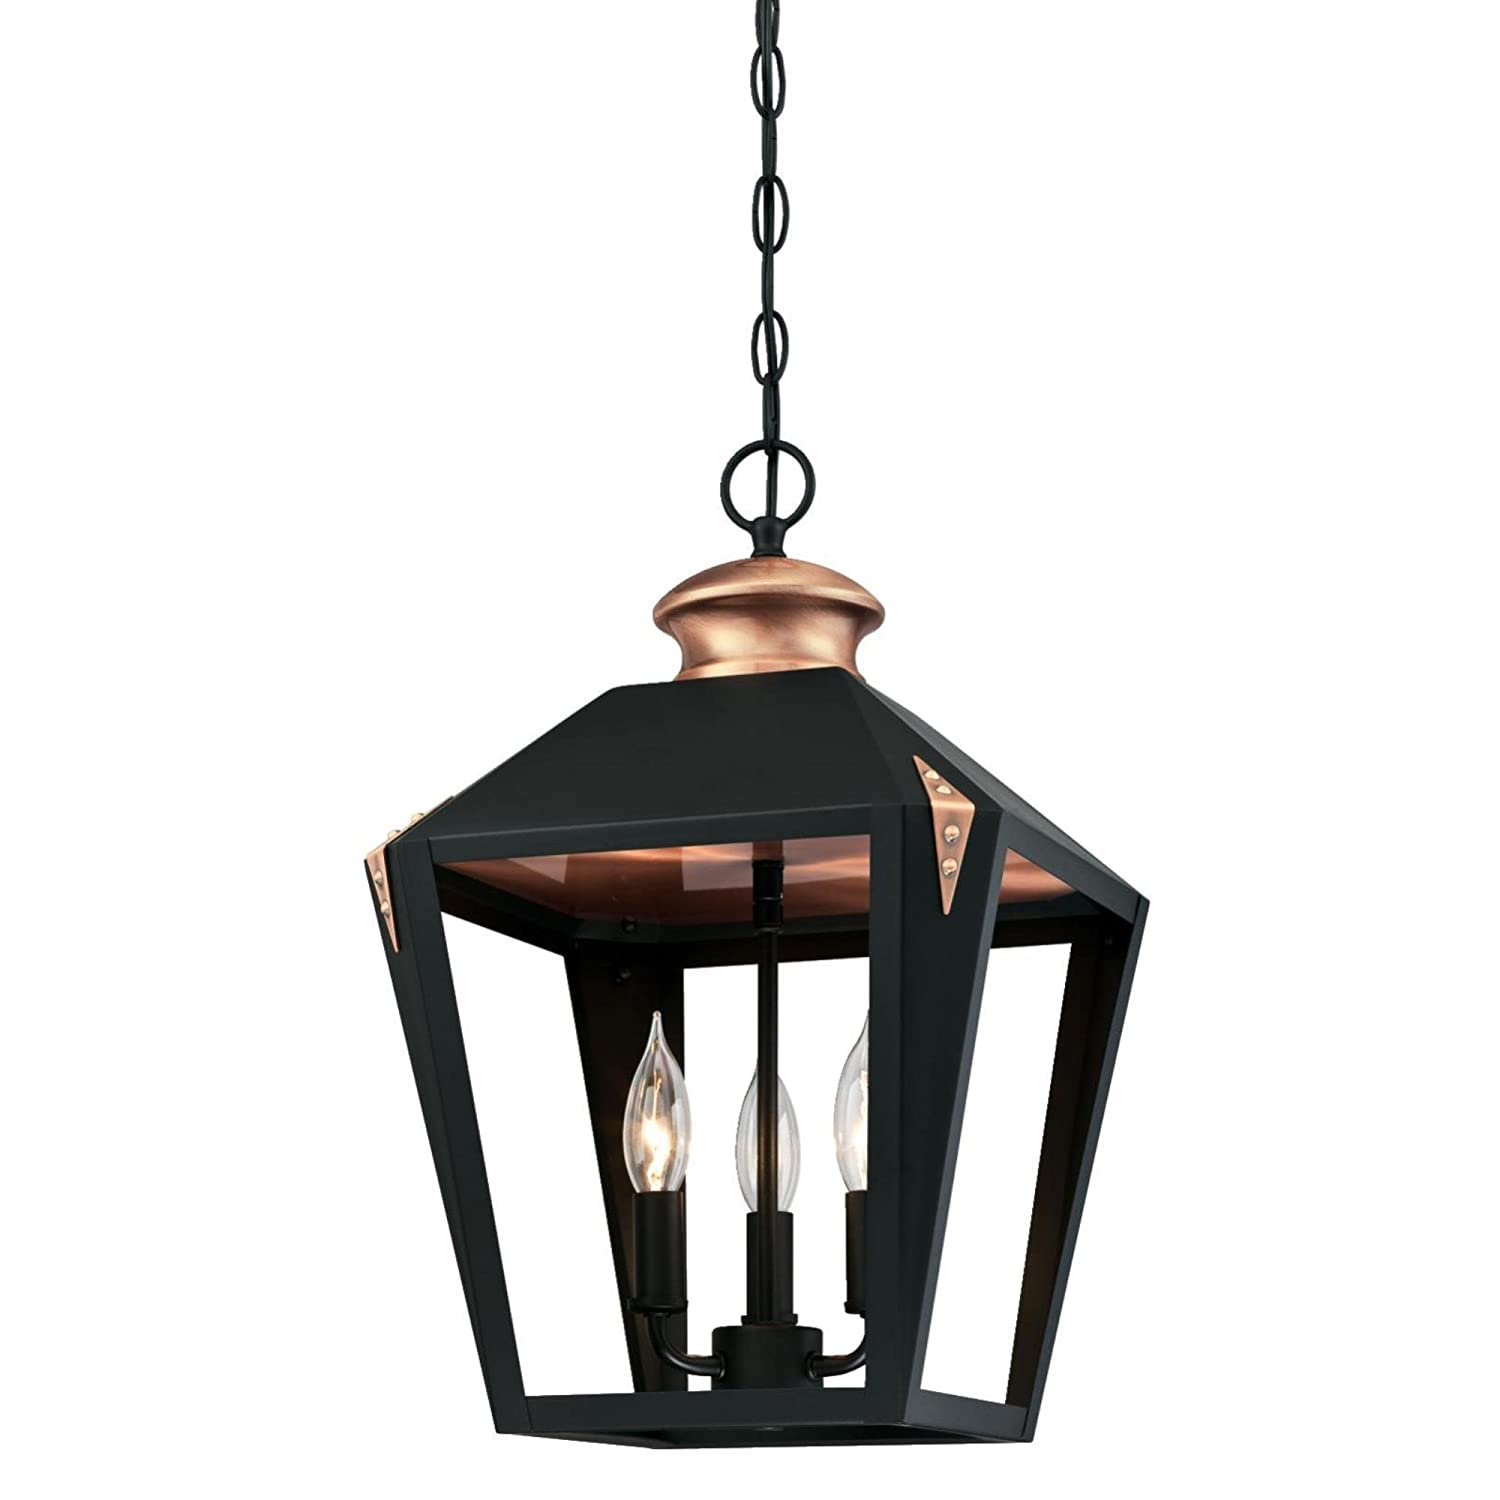 Westinghouse Lighting 6328500 Valley Forge Three-Light Indoor Pendant, Matte Black Finish with Copper Accents